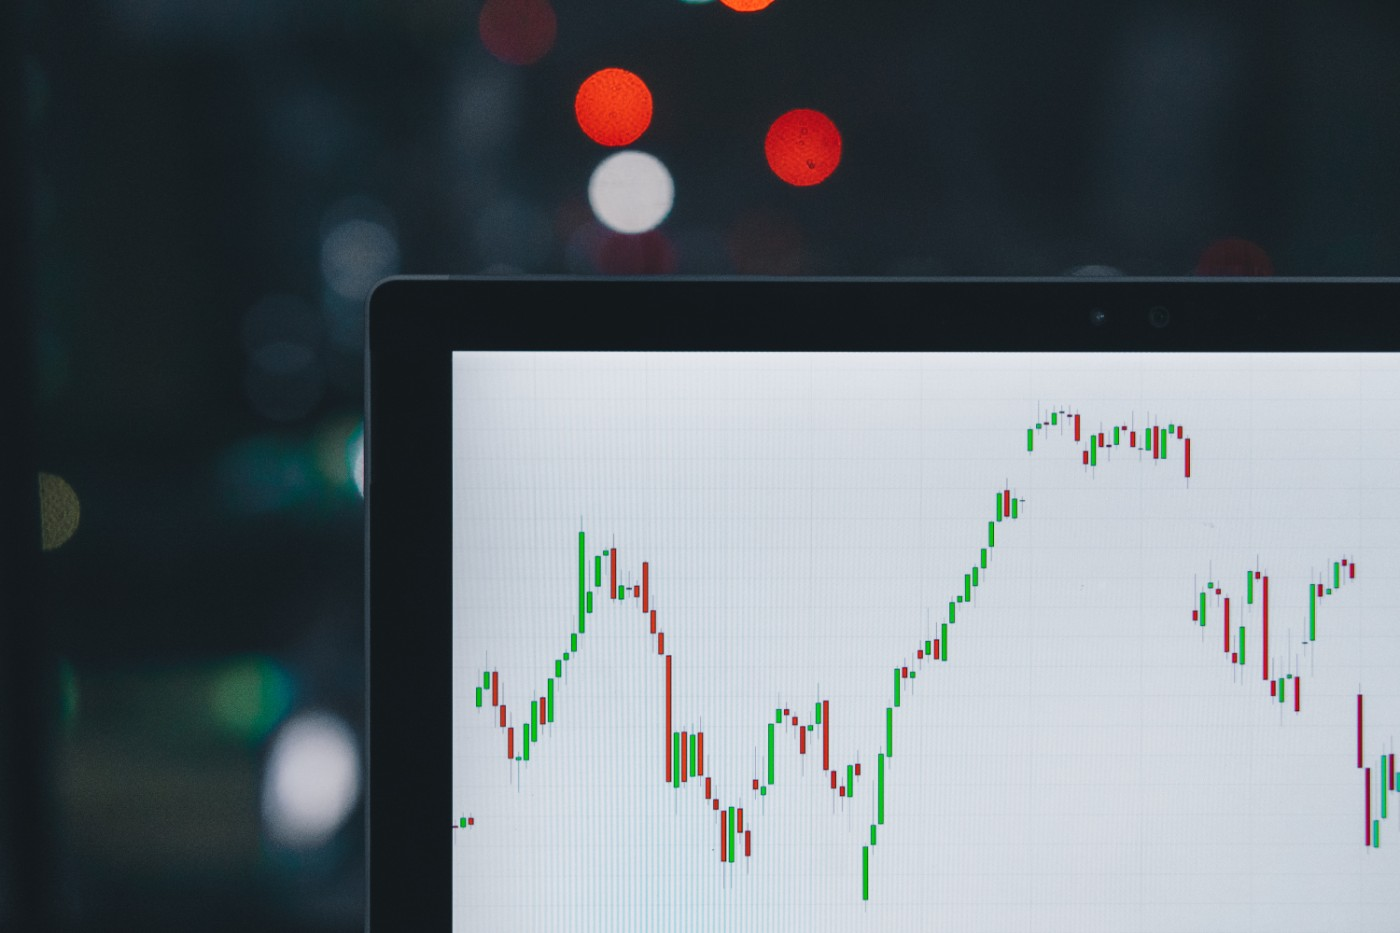 A message from our Chief Investment Officer on the recent market volatility